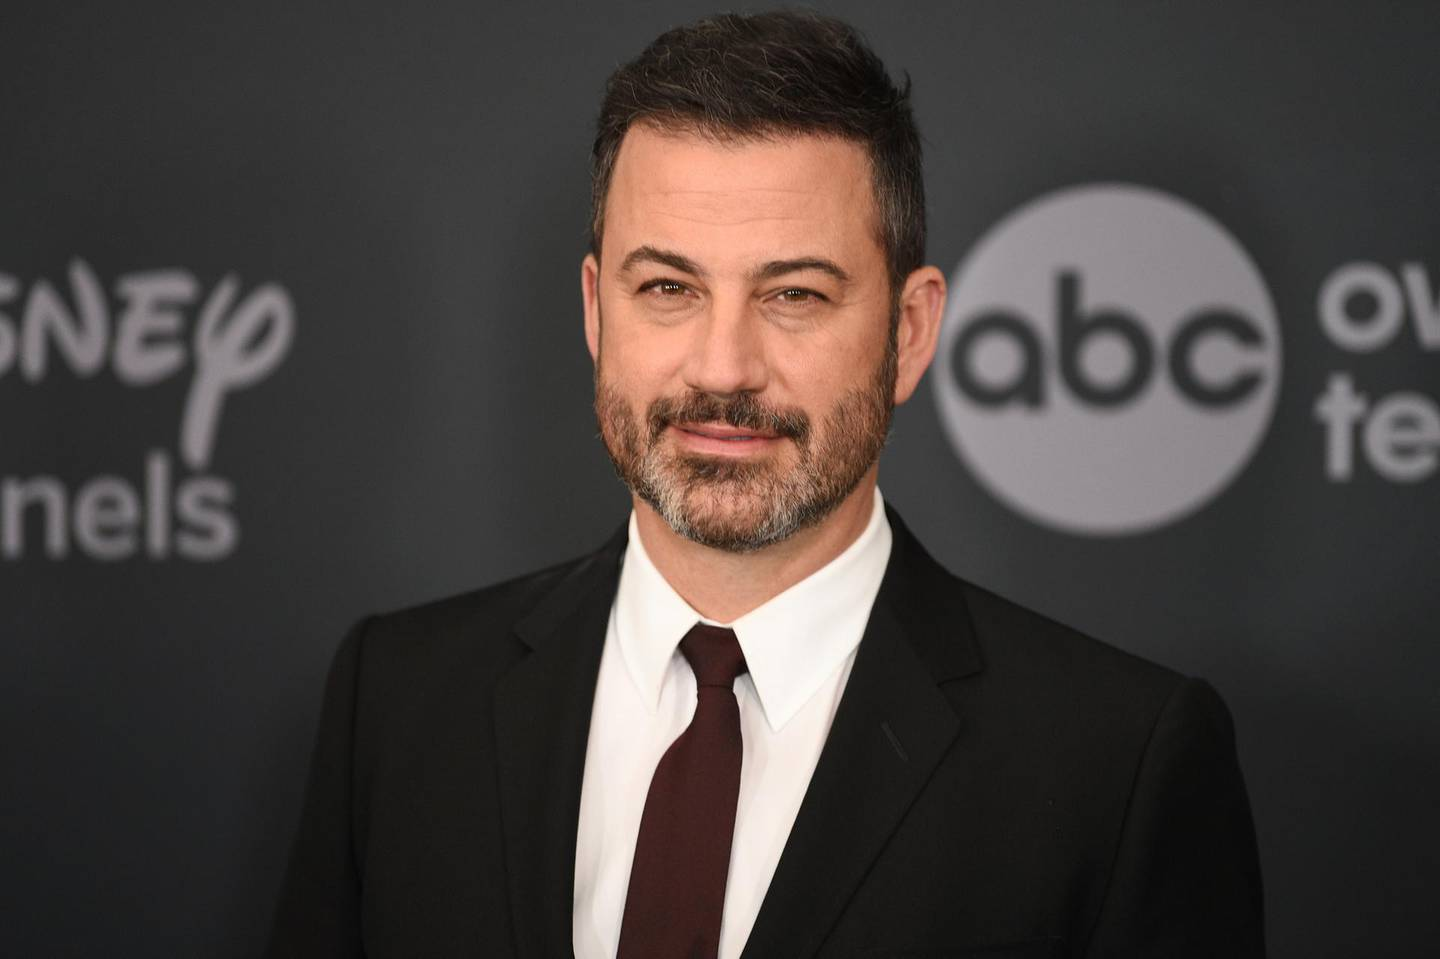 """FILE - This May 14, 2019 file photo shows Jimmy Kimmel at the Walt Disney Television 2019 upfront in New York. Kimmel will host a prime-time edition of """"Who Wants To Be A Millionaire"""" with stars as the contestants and winnings earmarked for their causes of choice. It will debut this spring on ABC. (Photo by Evan Agostini/Invision/AP, File)"""